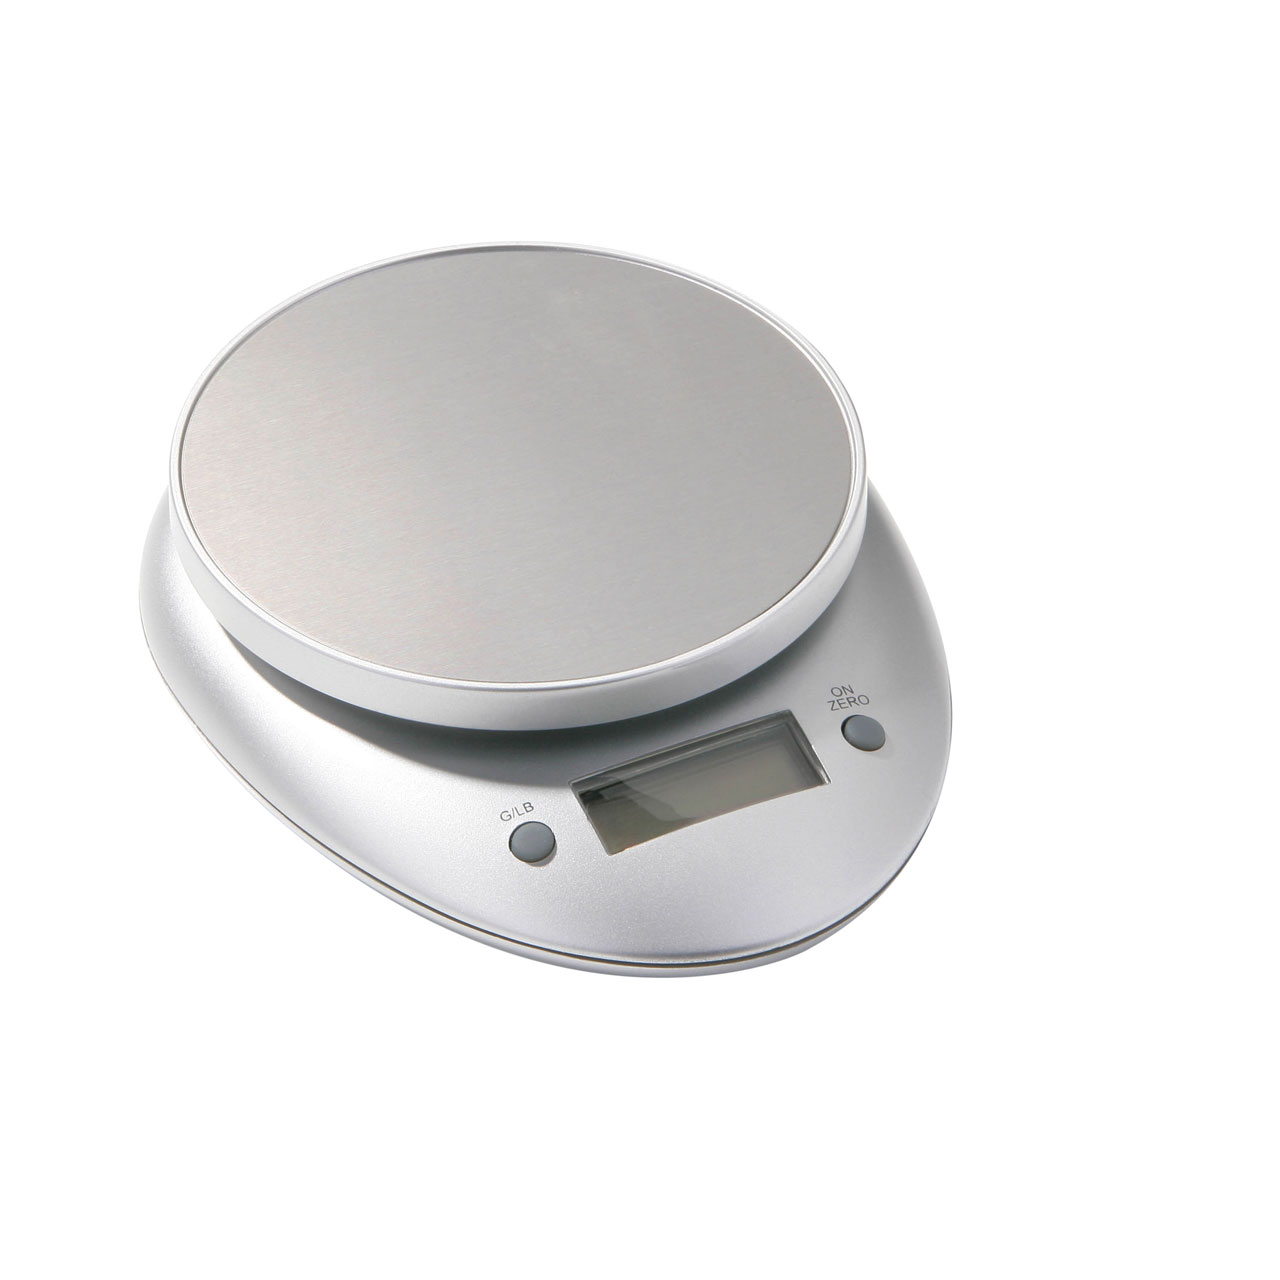 Digital weighing scales stainless steel top kitchen 3kg for Best kitchen scale for baking